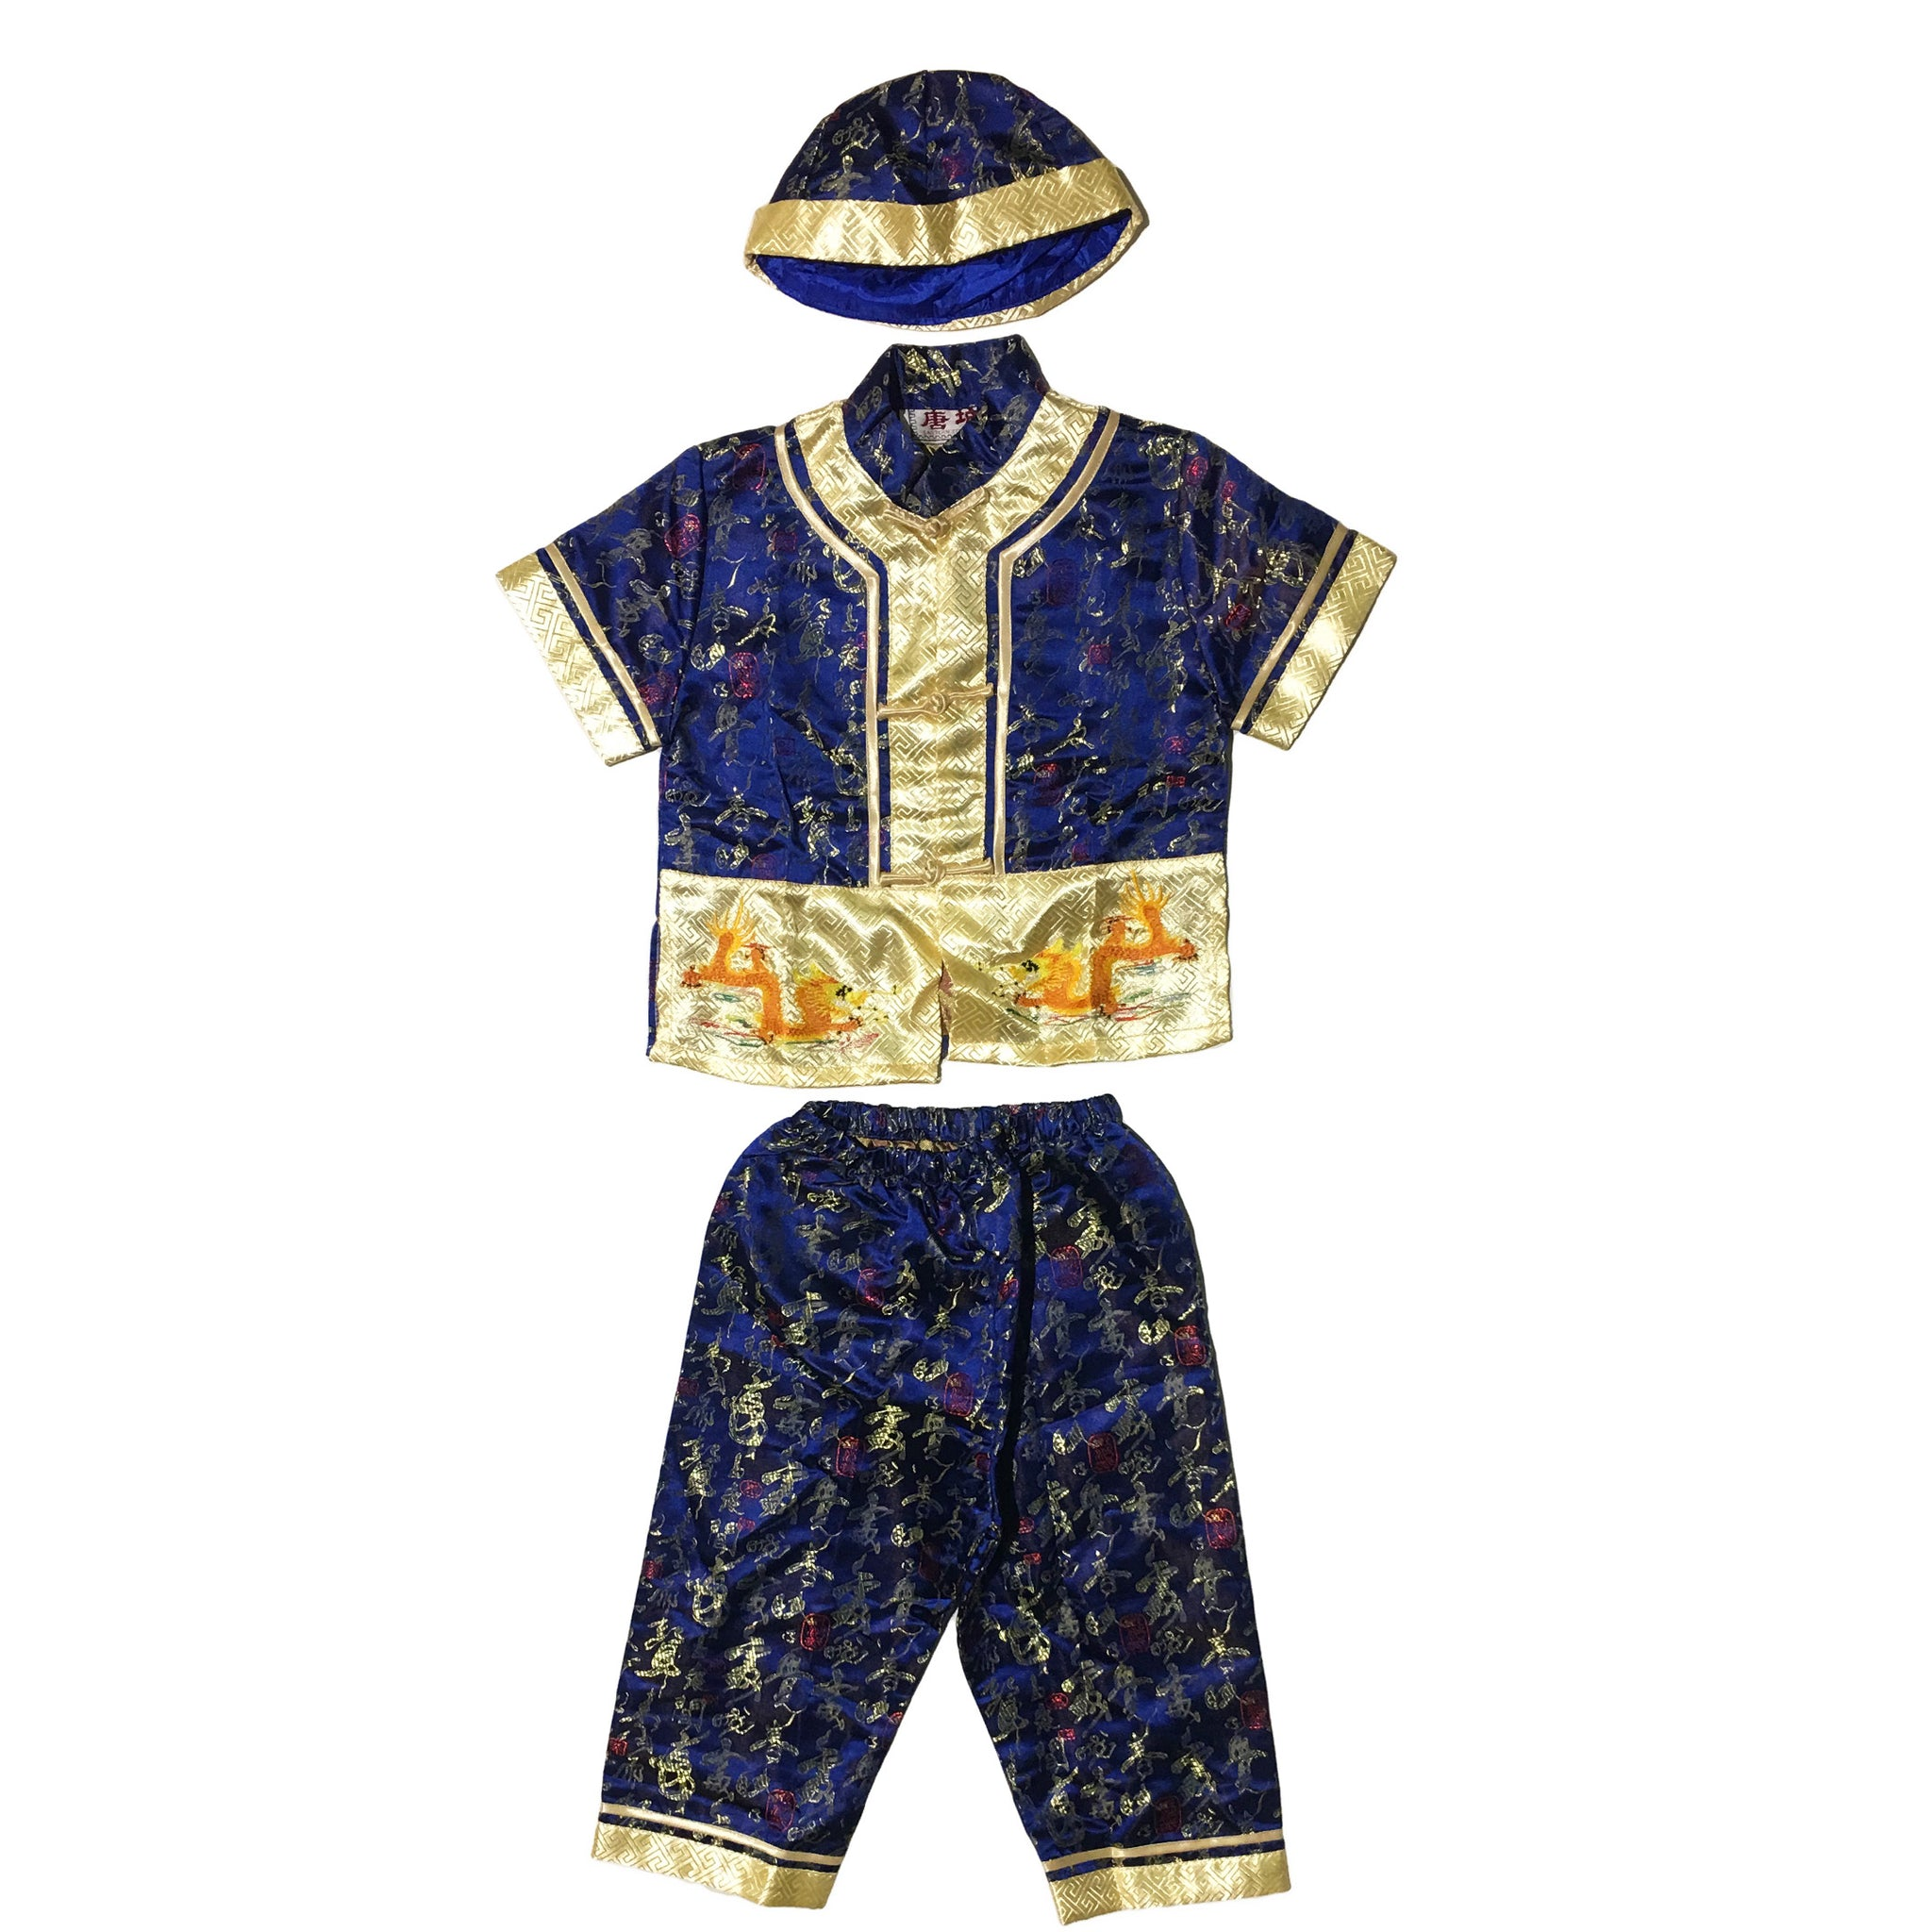 Blue Gold Youth Tang Zhuang Outfit